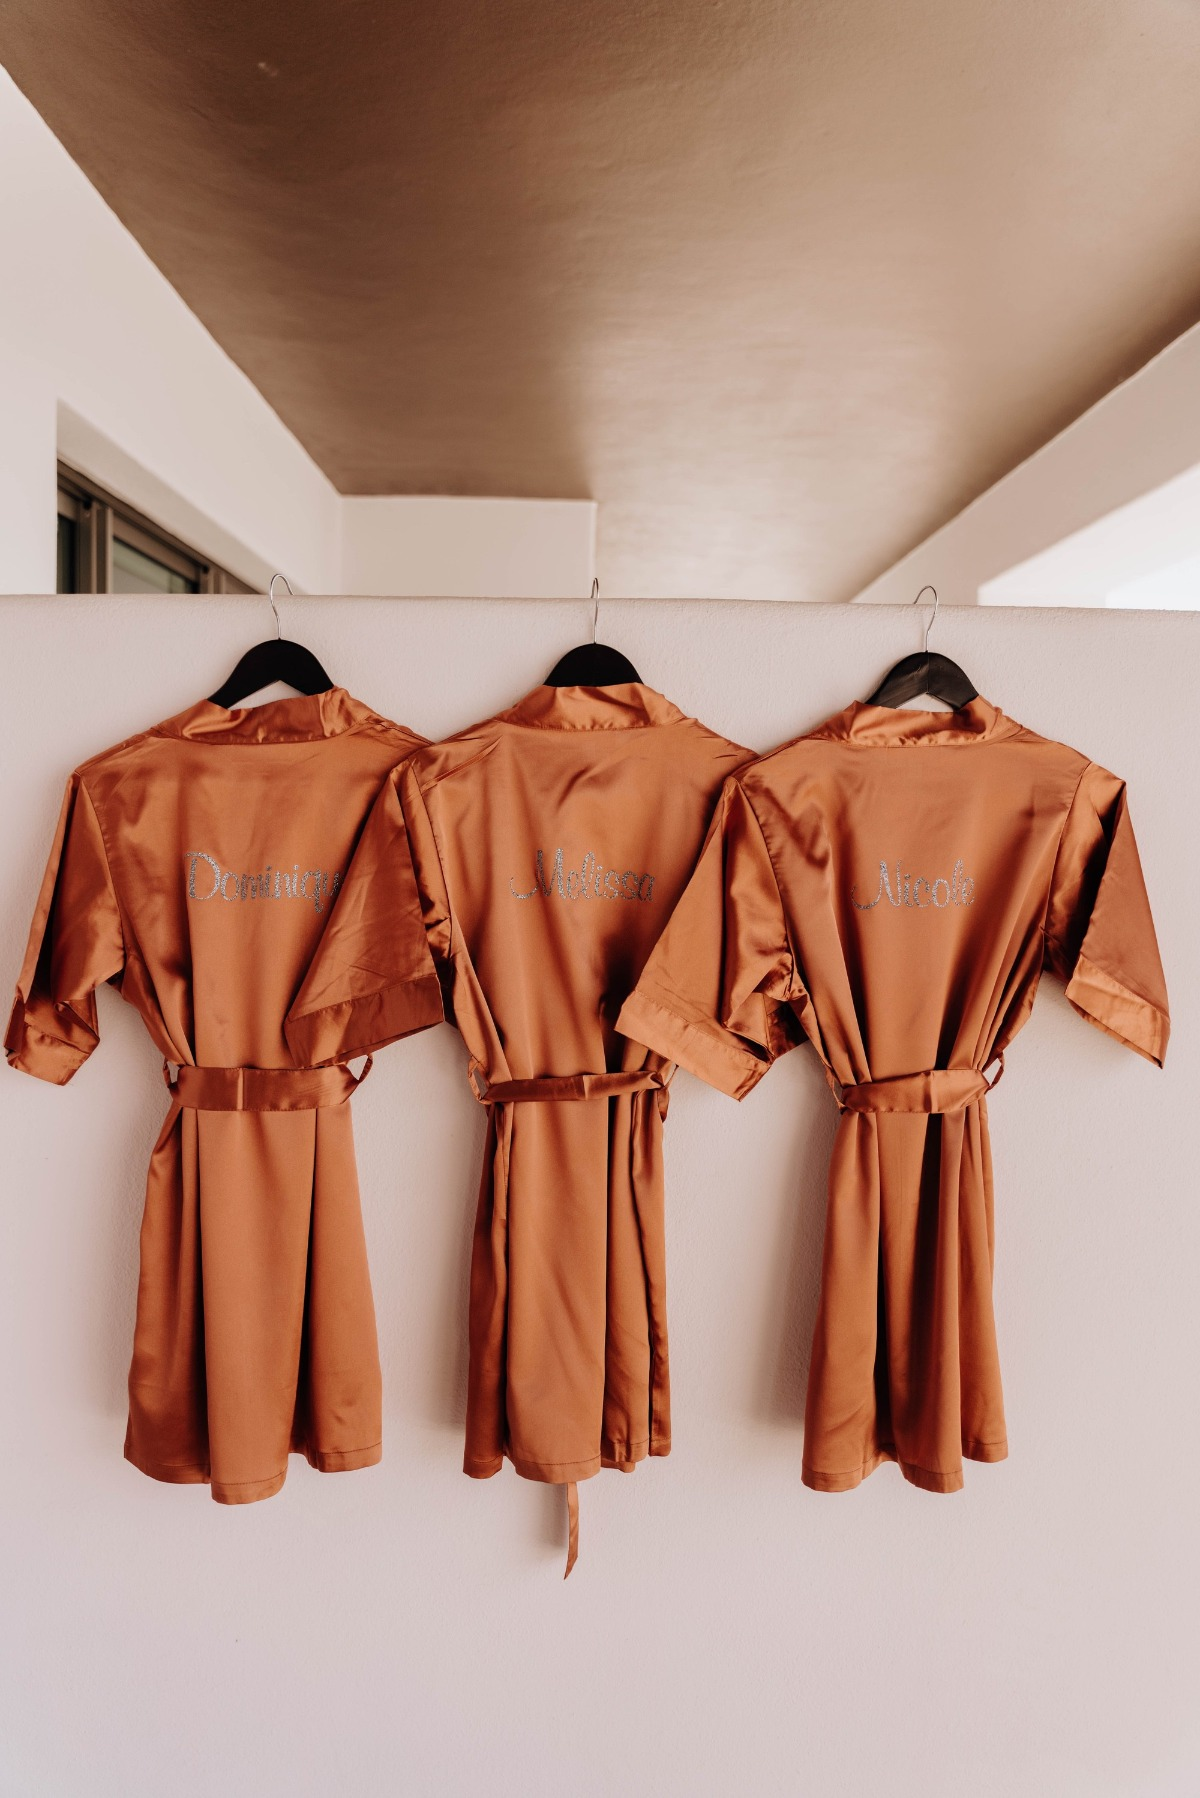 personalized terra cotta bridesmaid robes with their names in glitter.